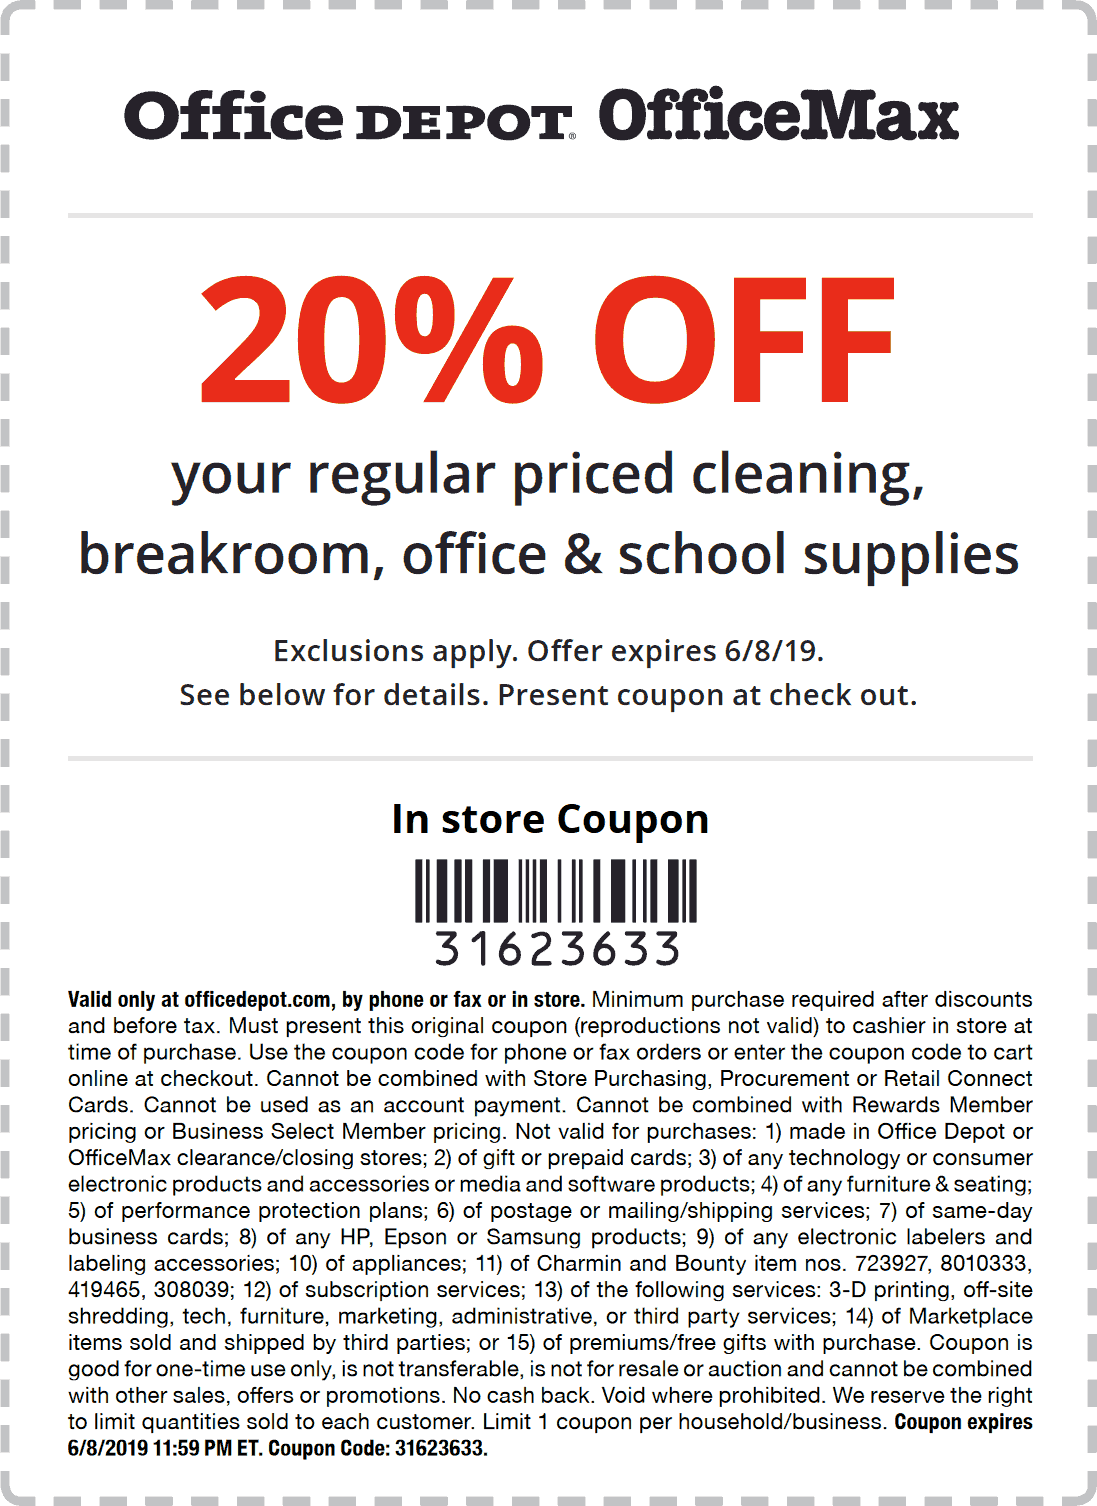 Office Depot Coupon June 2019 20% off at Office Depot & OfficeMax, or online via promo code 31623633